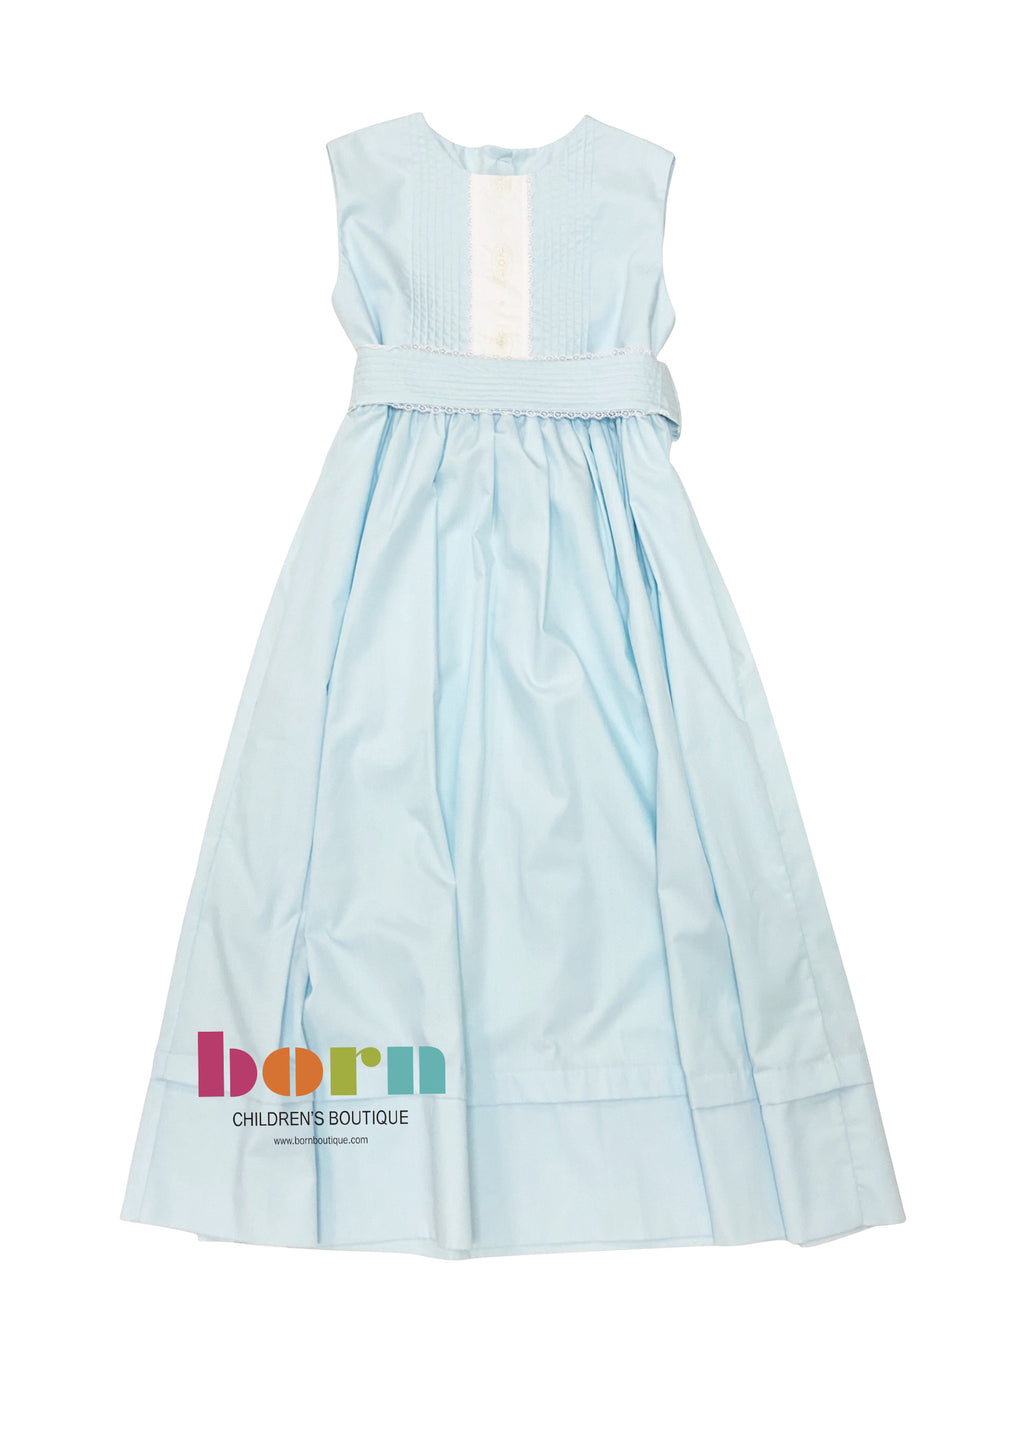 Heirloom Sleeveless Robins Egg Blue Dress - Born Childrens Boutique